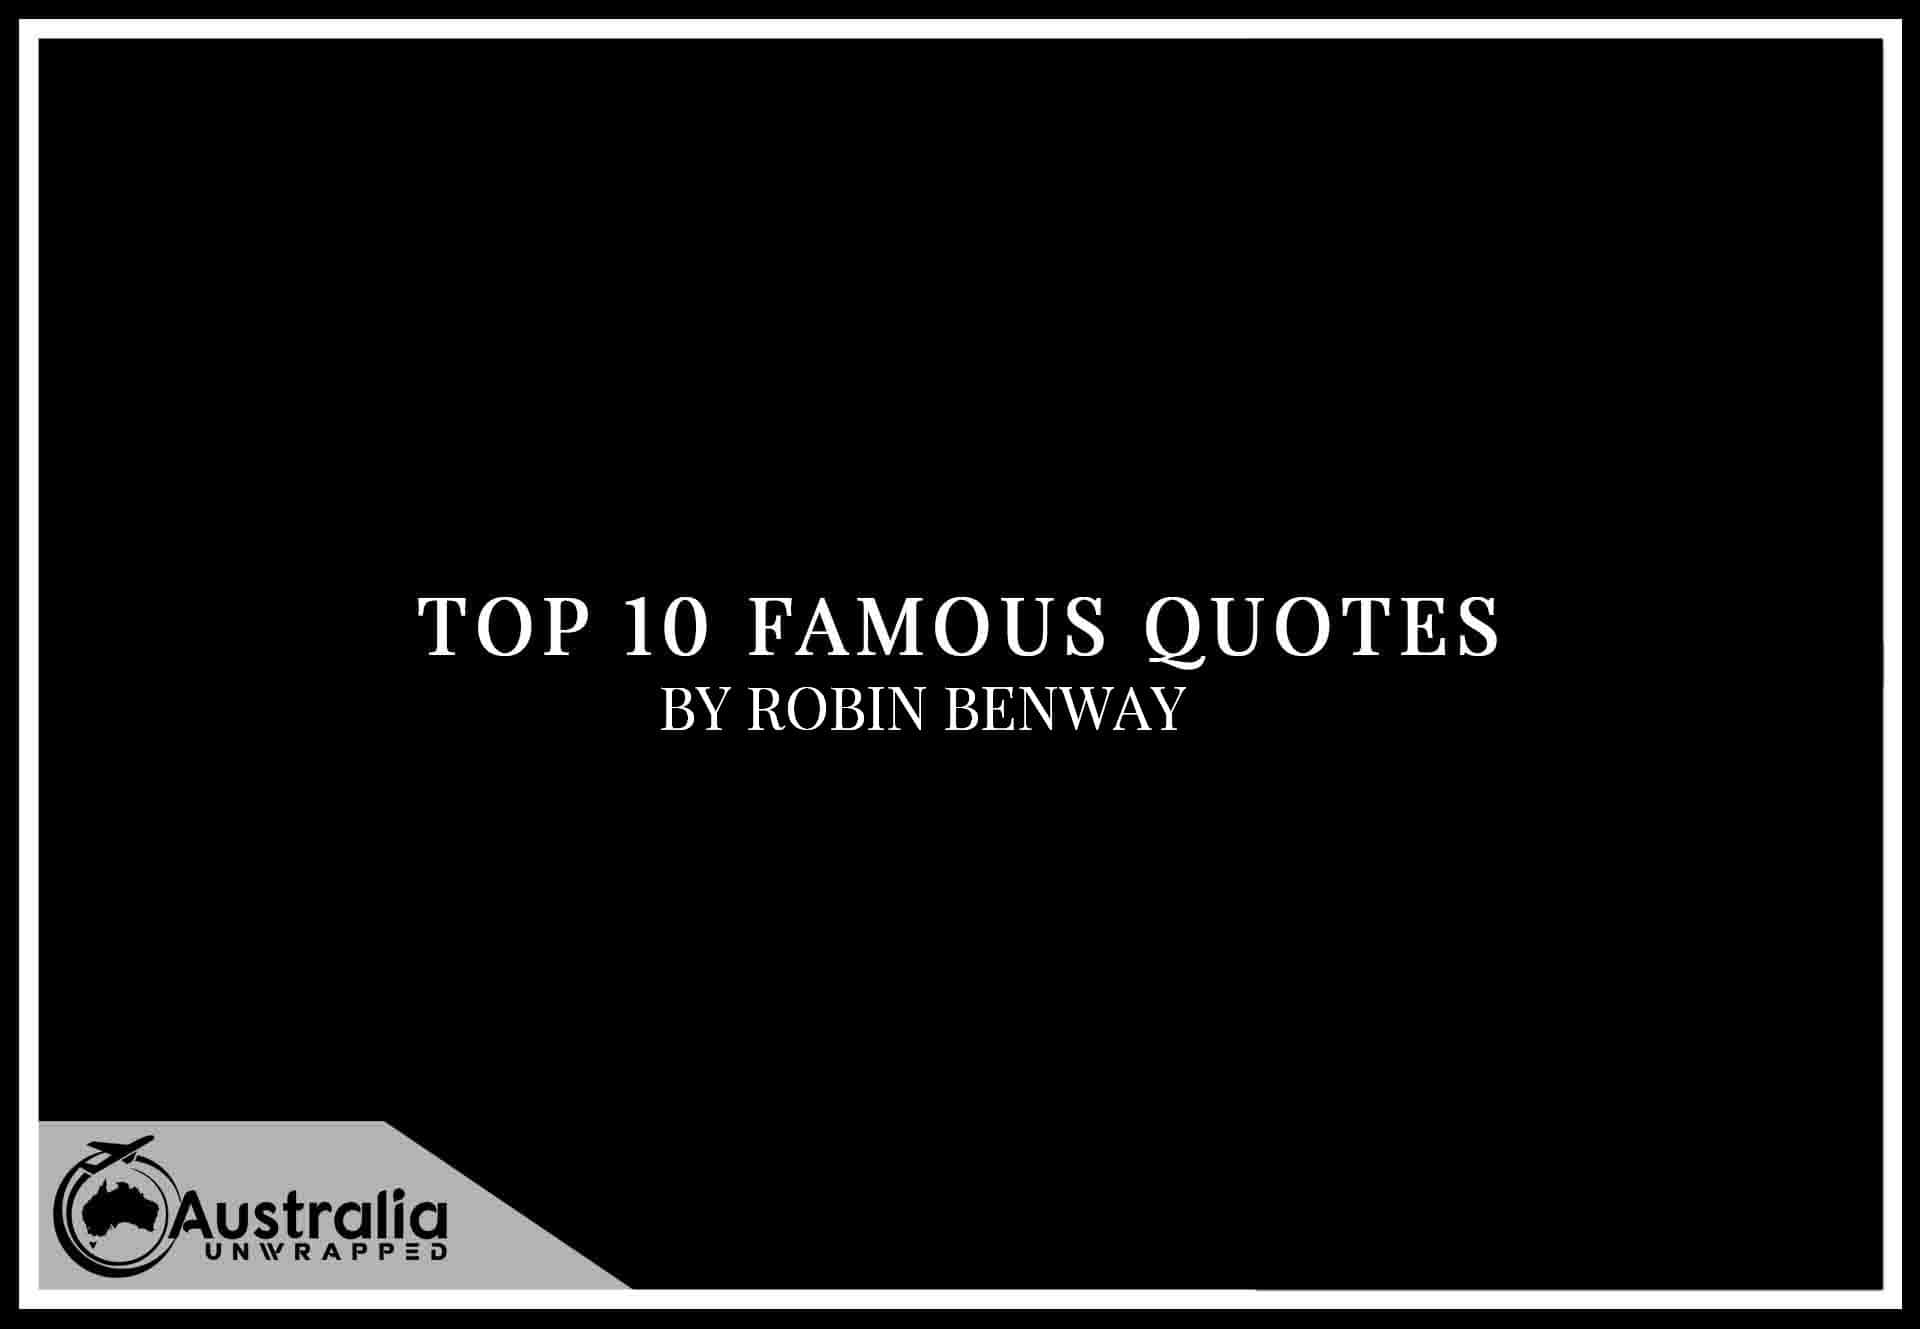 Top 10 Famous Quotes by Author Robin Benway